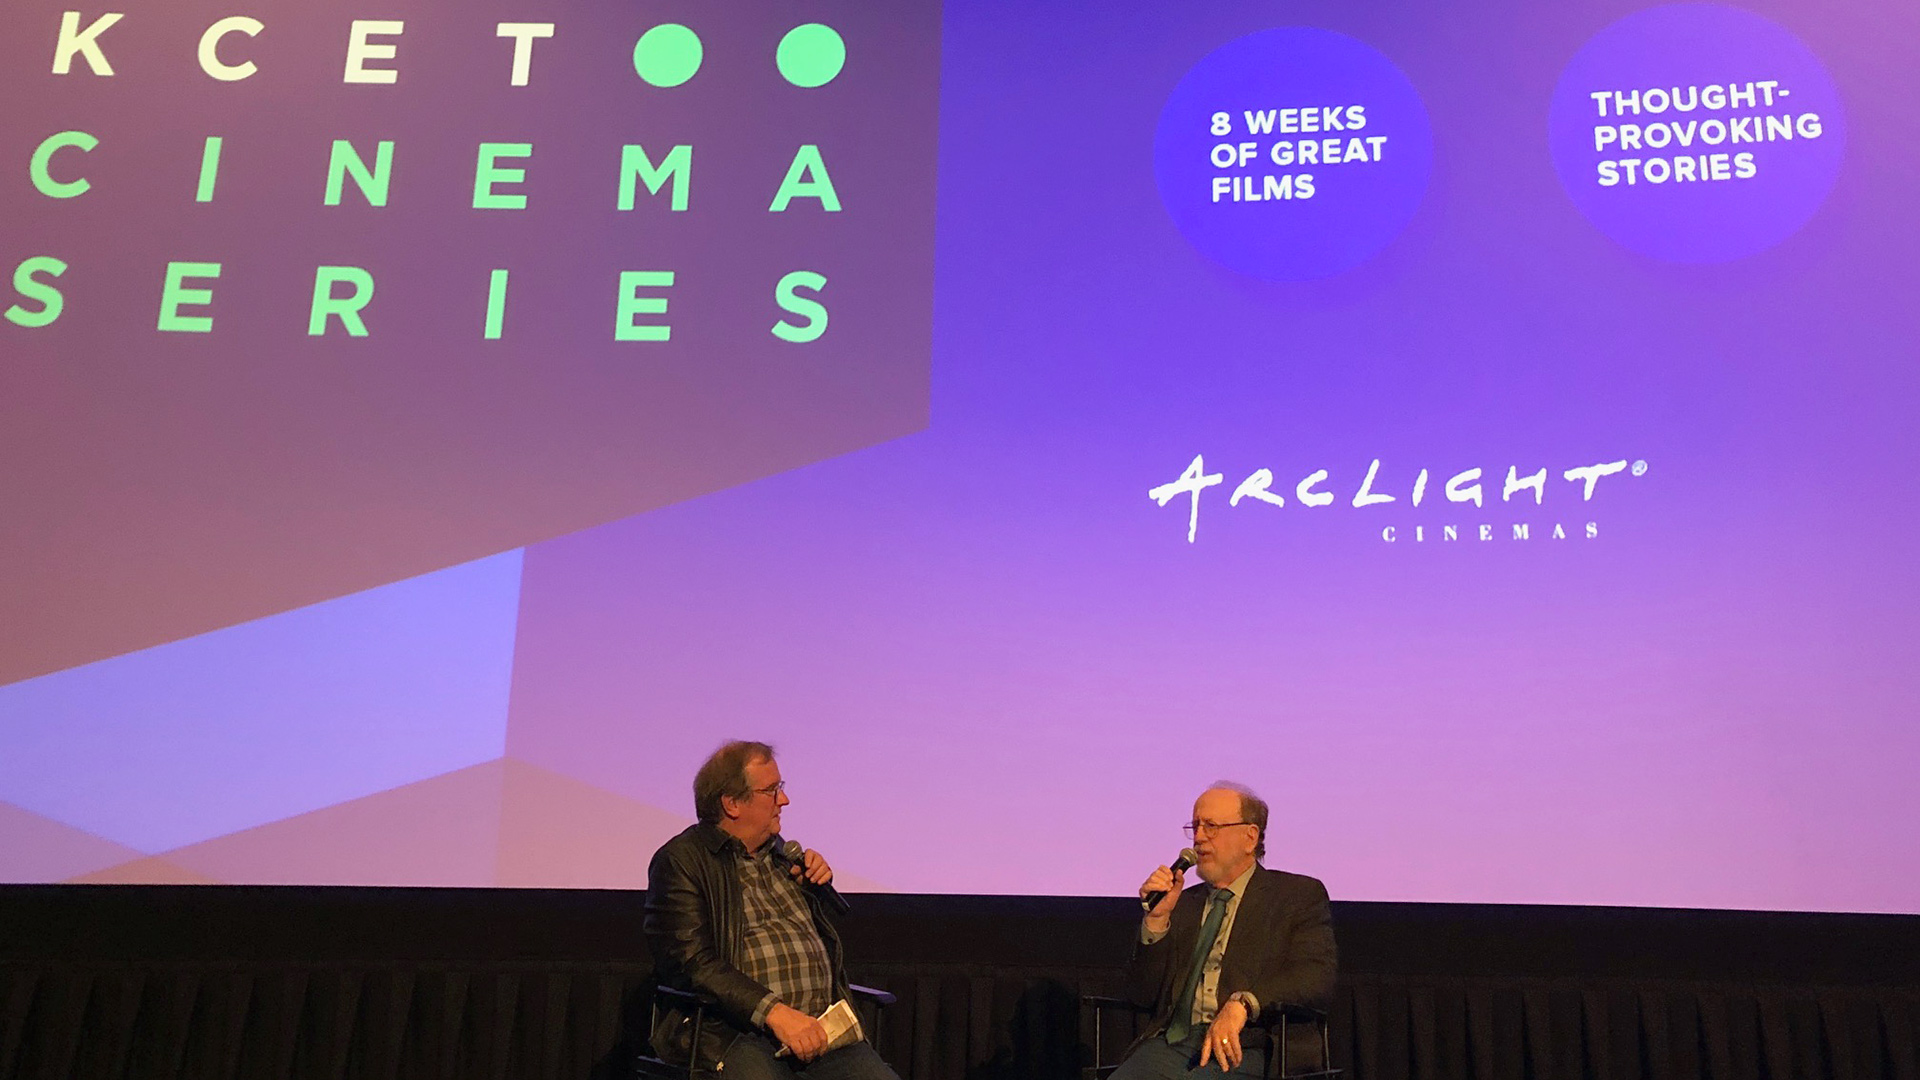 Post screening conversation with Pete Hammond and Lightyear President Arnie Holland.